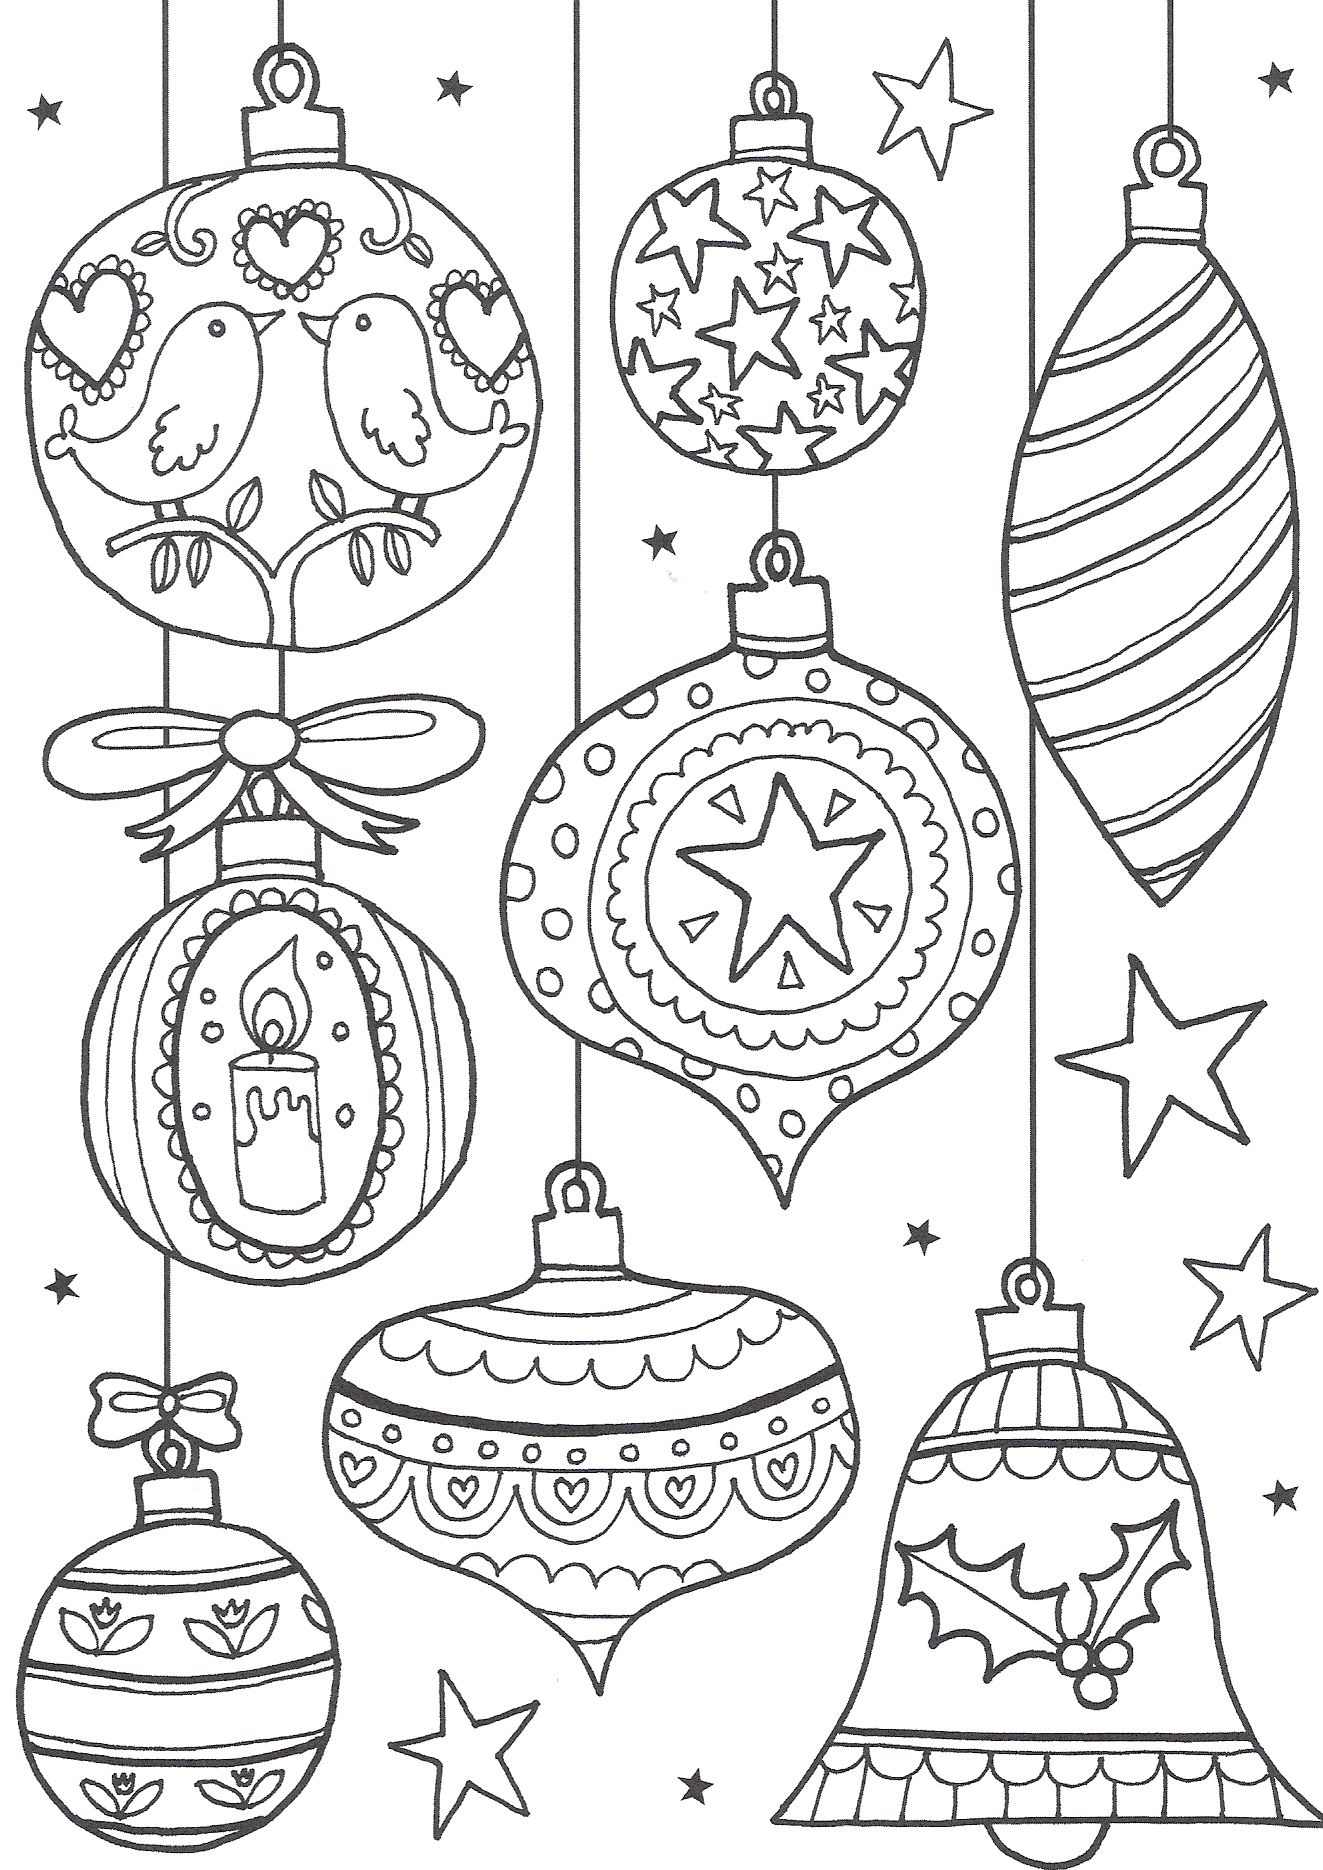 Free Christmas Colouring Pages For Adults – The Ultimate Roundup - Free Printable Christmas Ornament Coloring Pages